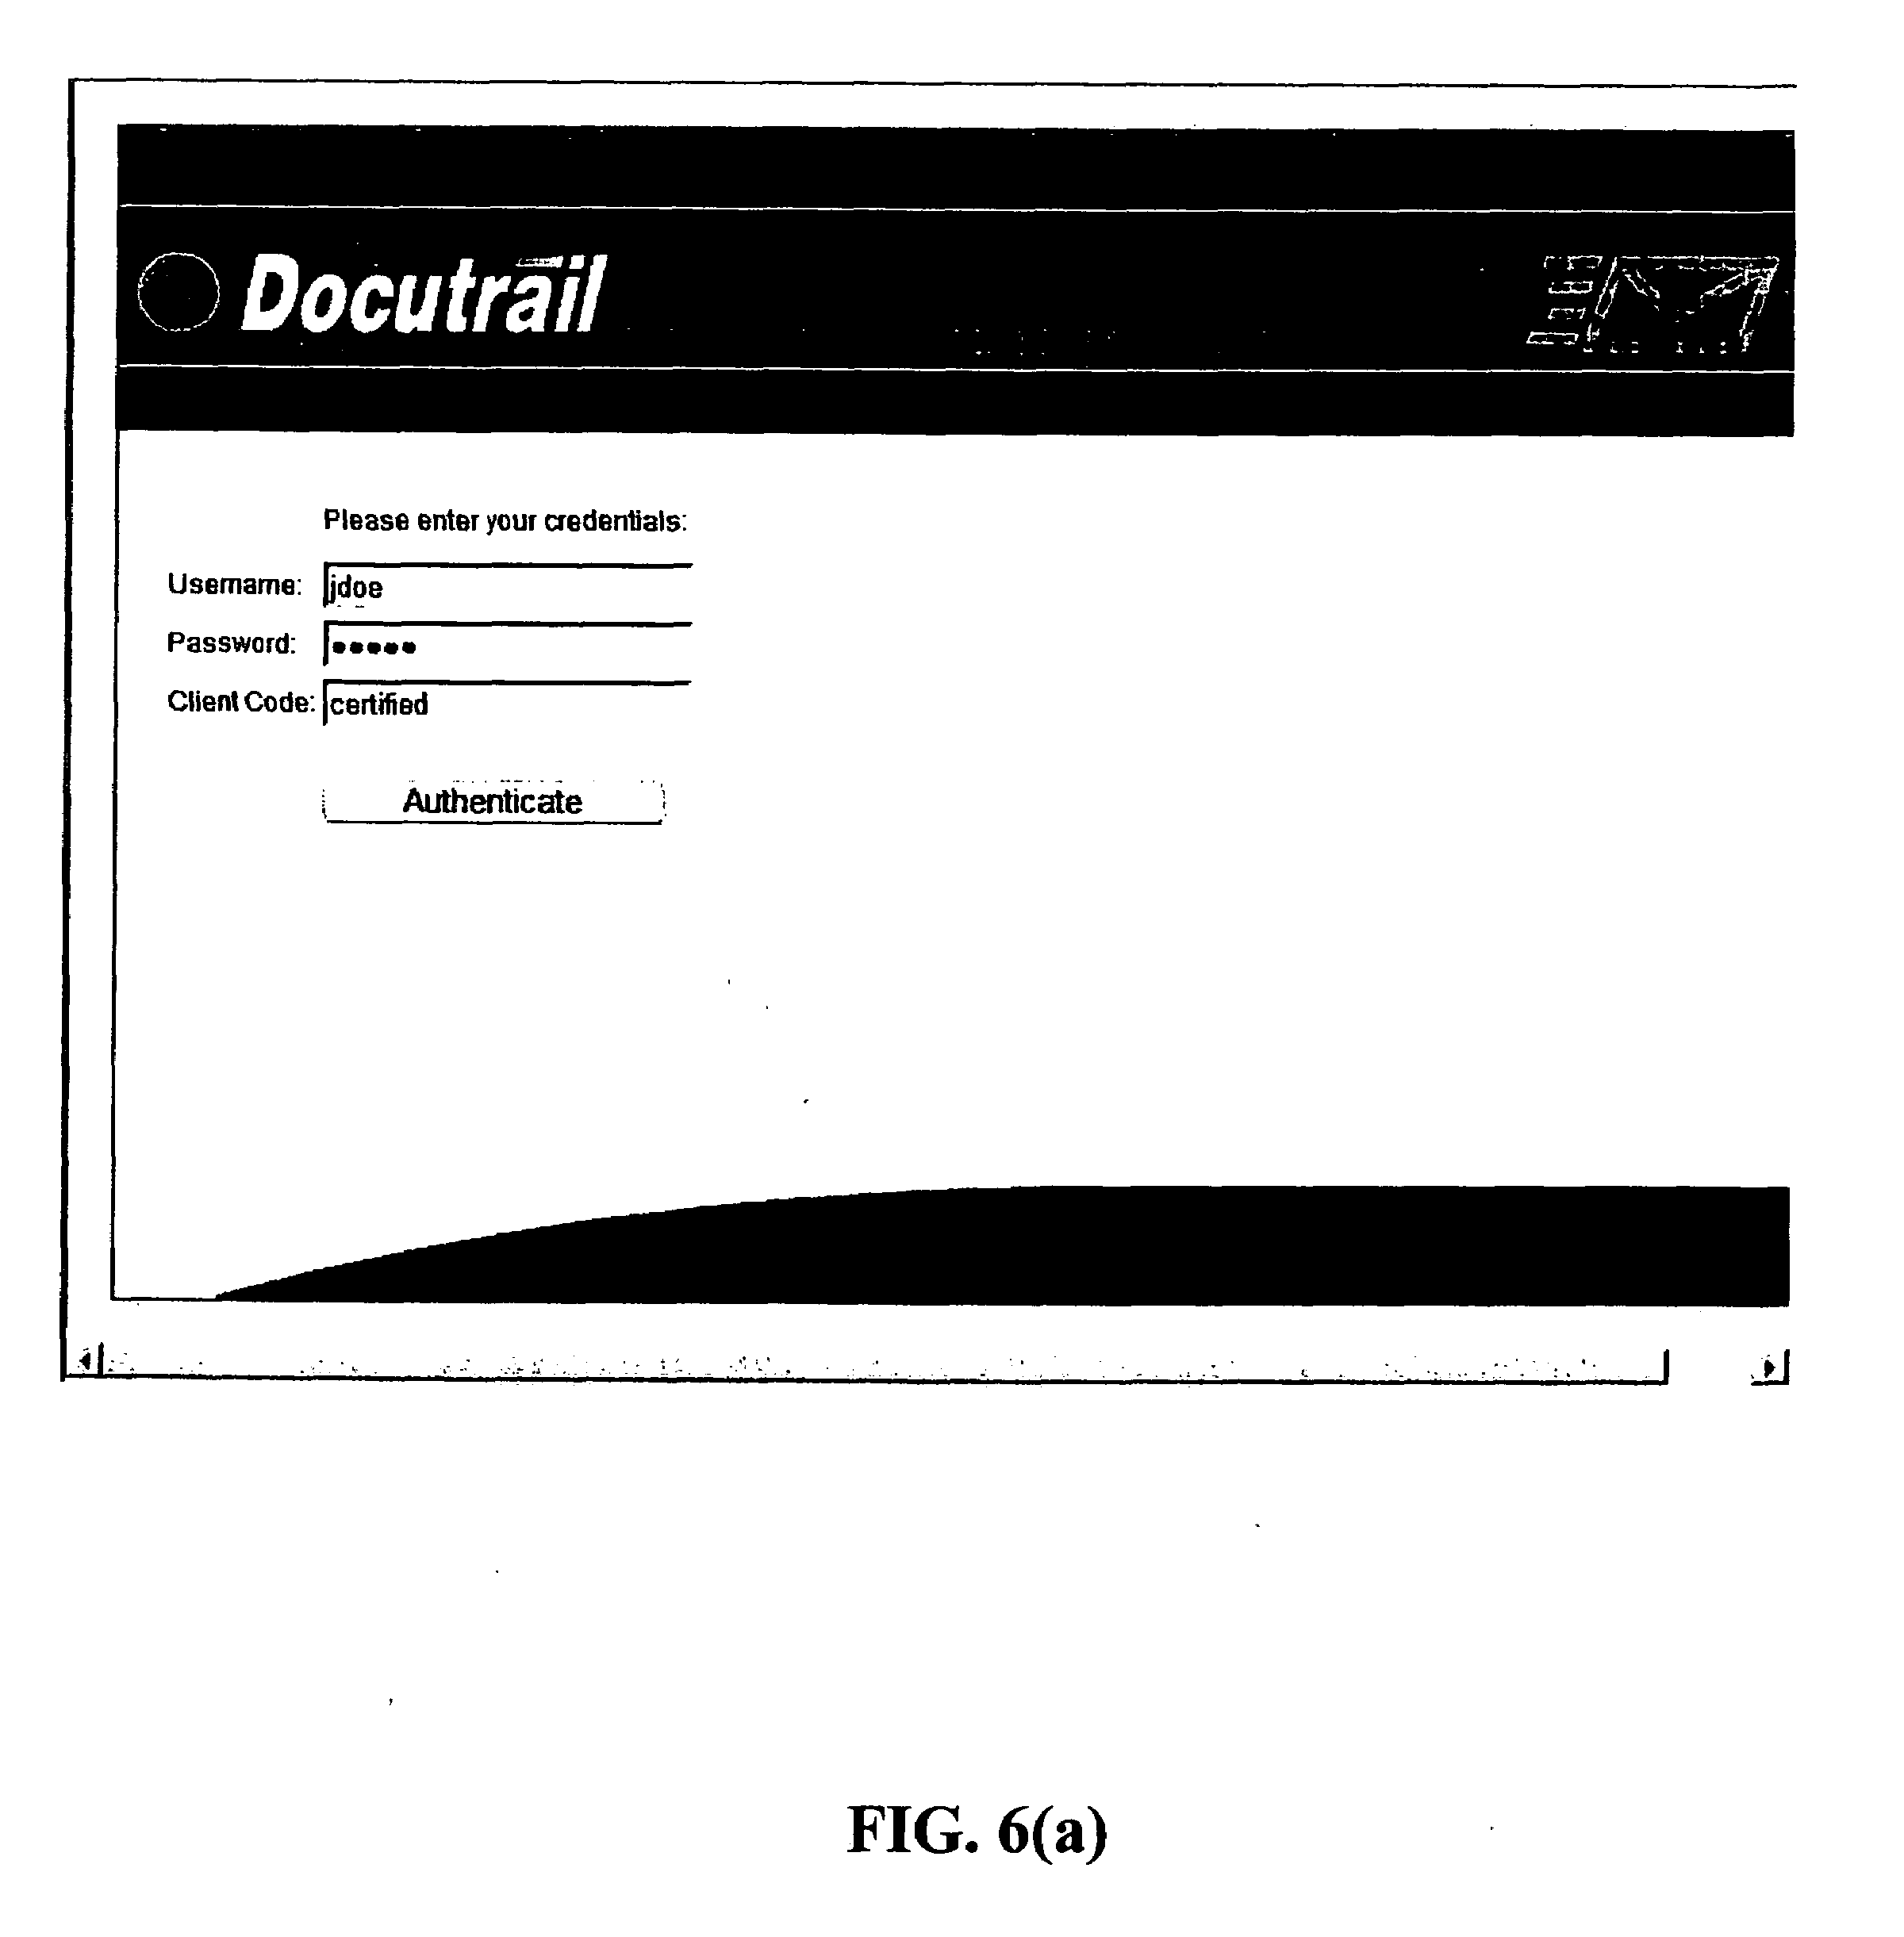 Example Of Invoice Layout Word Patent Us  Outbound Document System And Method  Receipt For Car Purchase Excel with Lic Paid Receipt Pdf Patent Drawing Invoice Processing Platform Pdf